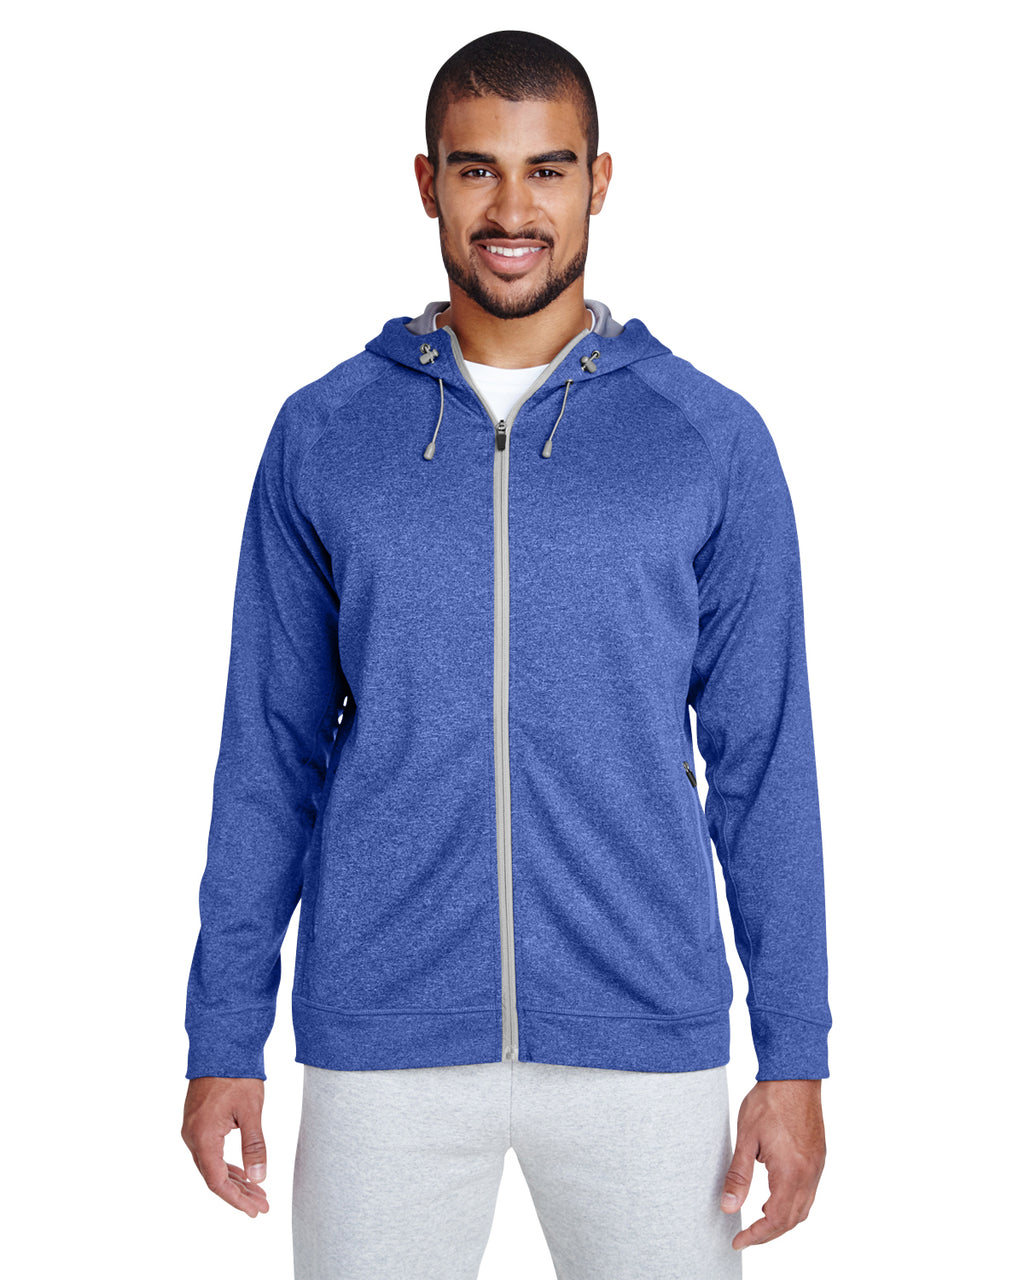 TT38 - Team 365 Men's Excel Mélange Performance Fleece Jacket